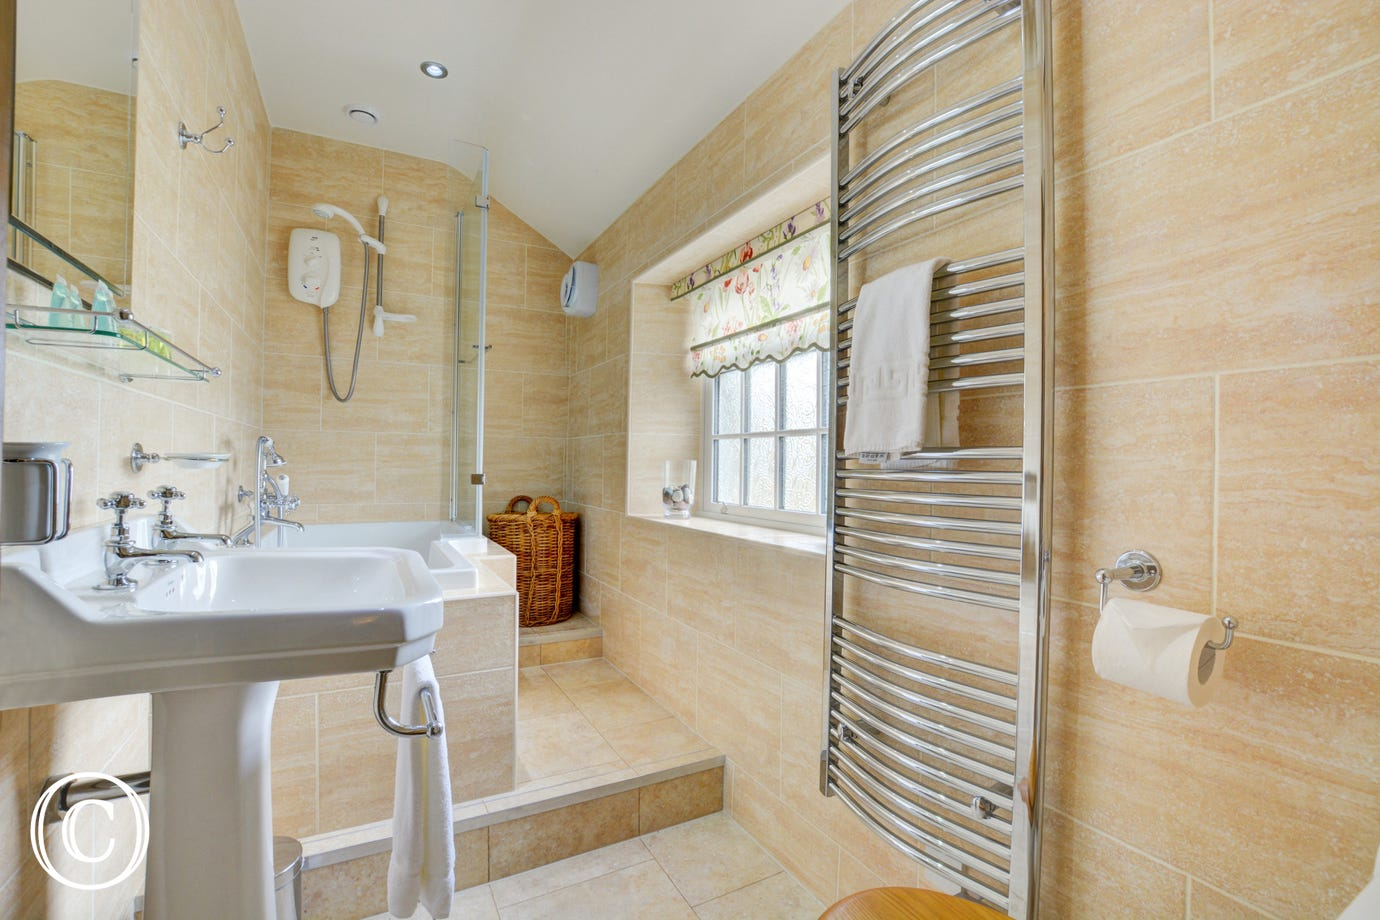 House bathroom with bath and shower over